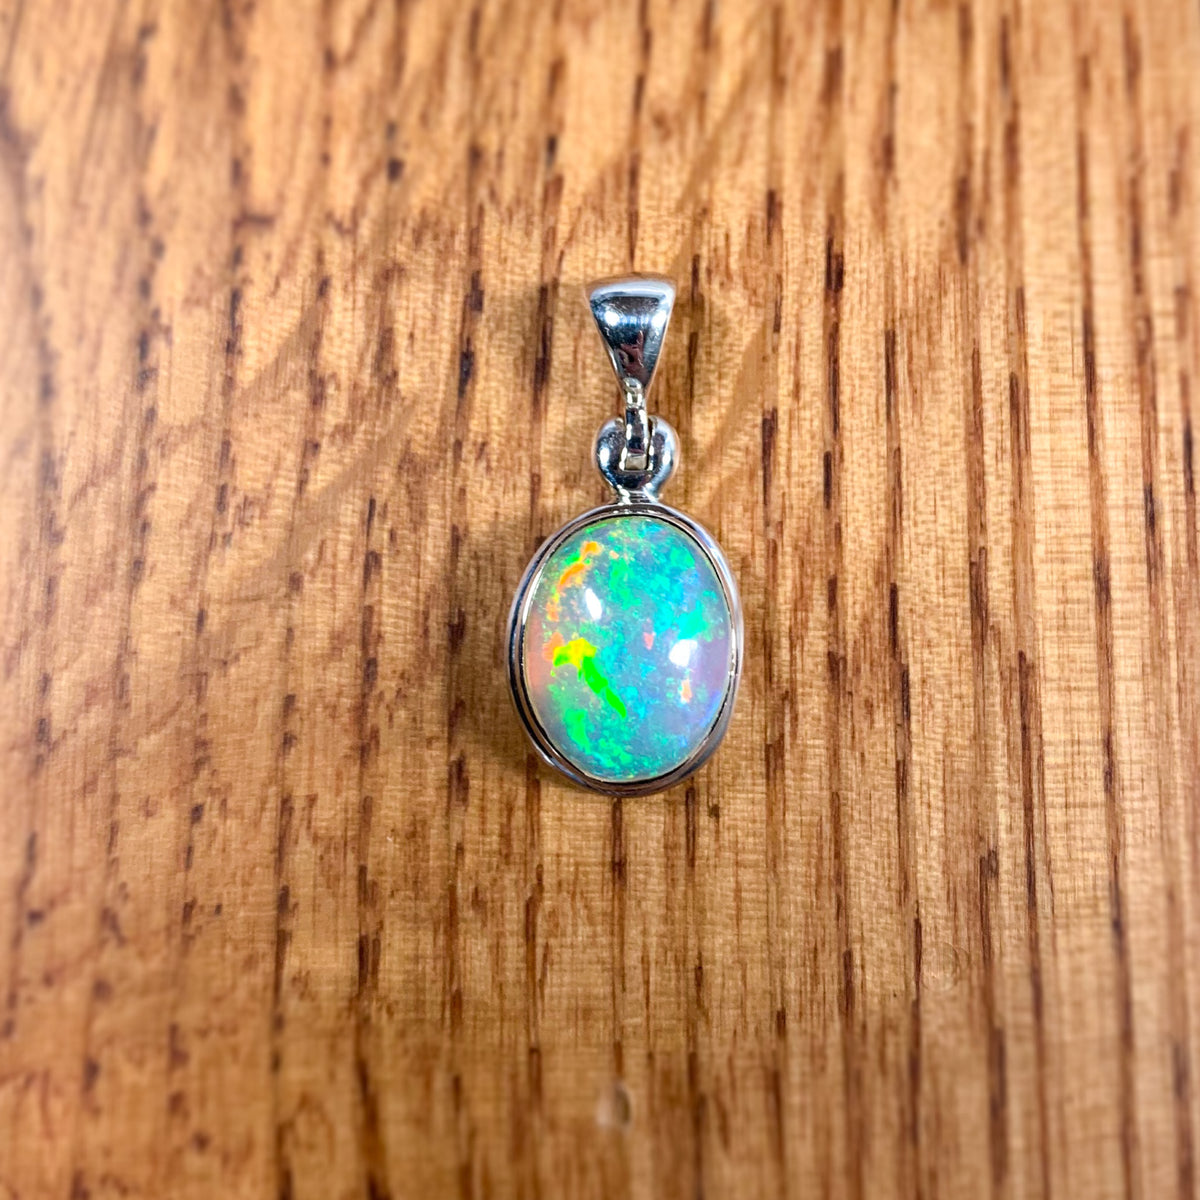 Rainbow Opal Stone Pendant / Necklace set in Sterling Silver